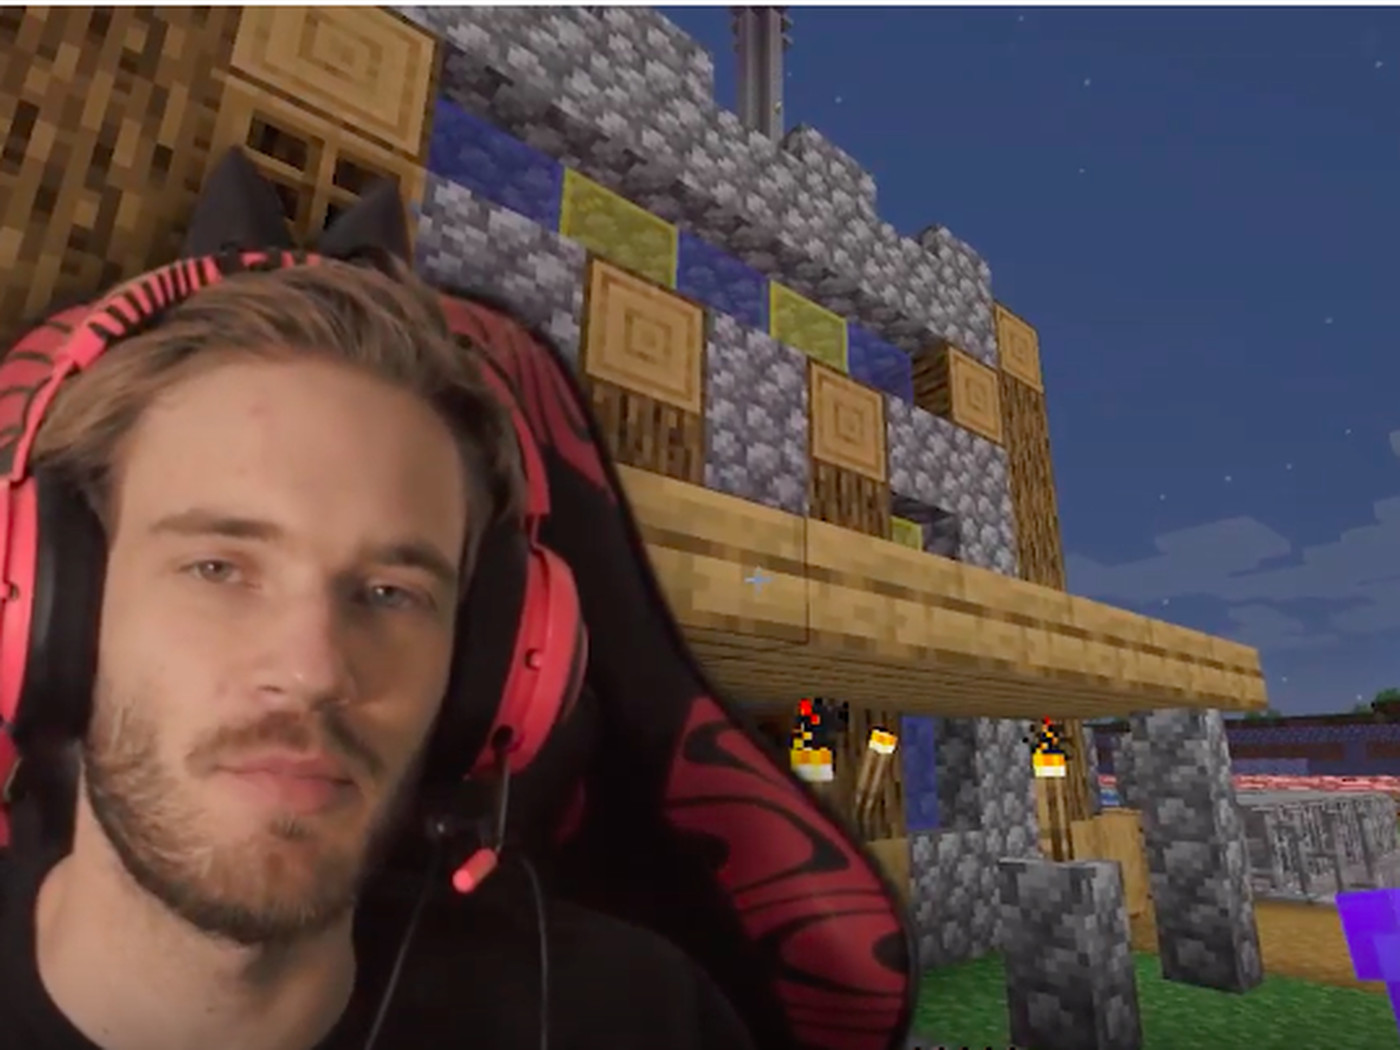 Minecraft's recent surge on YouTube proves that the 'PewDiePie